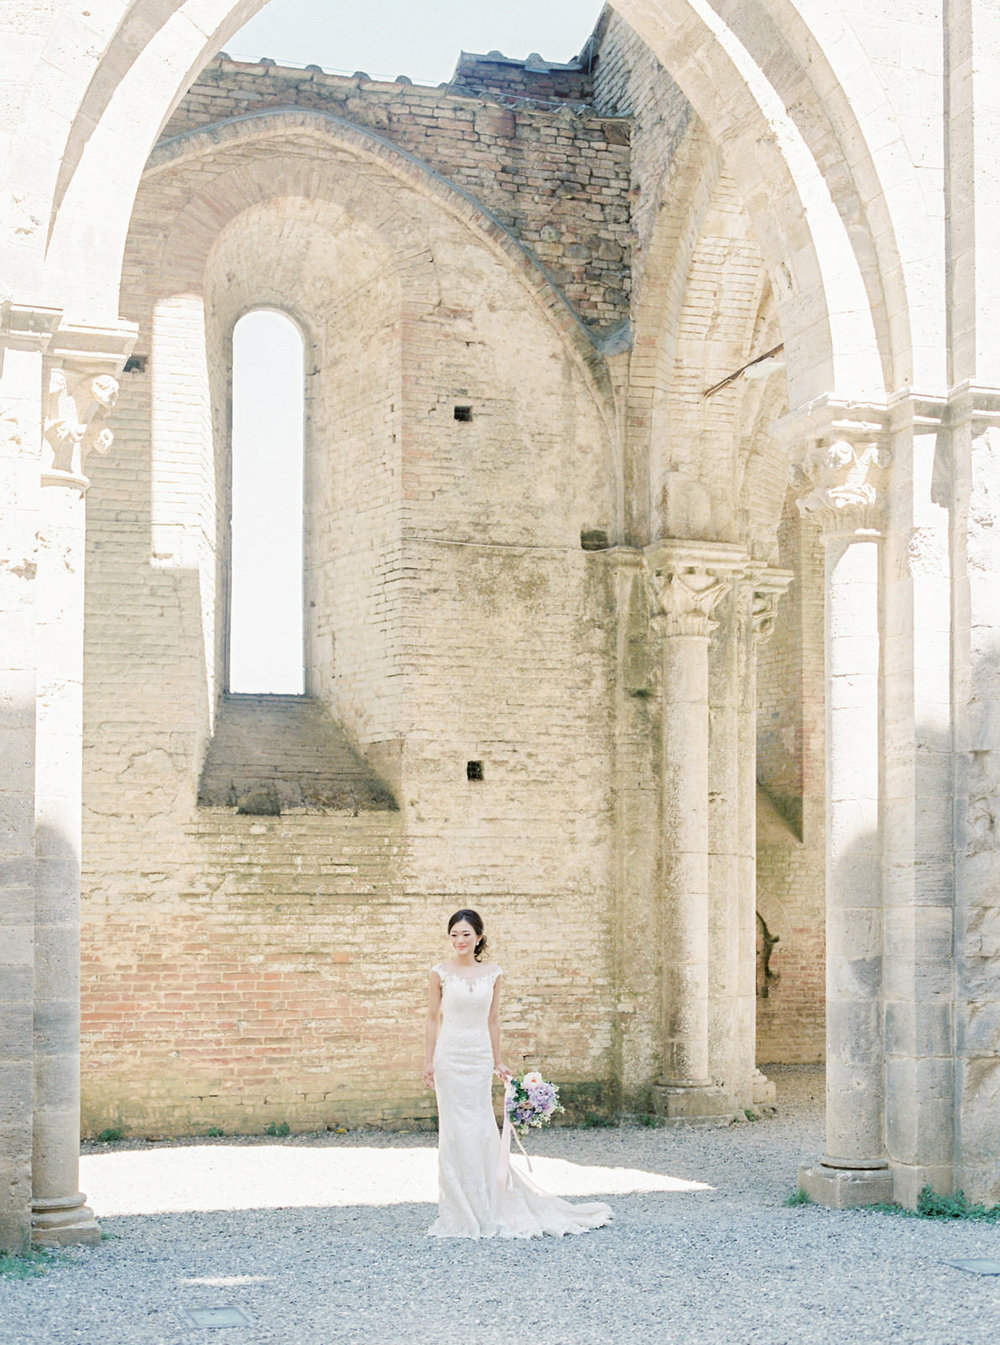 Tuscany Prewedding Photography in Siena - CHYMO & MORE Photograp